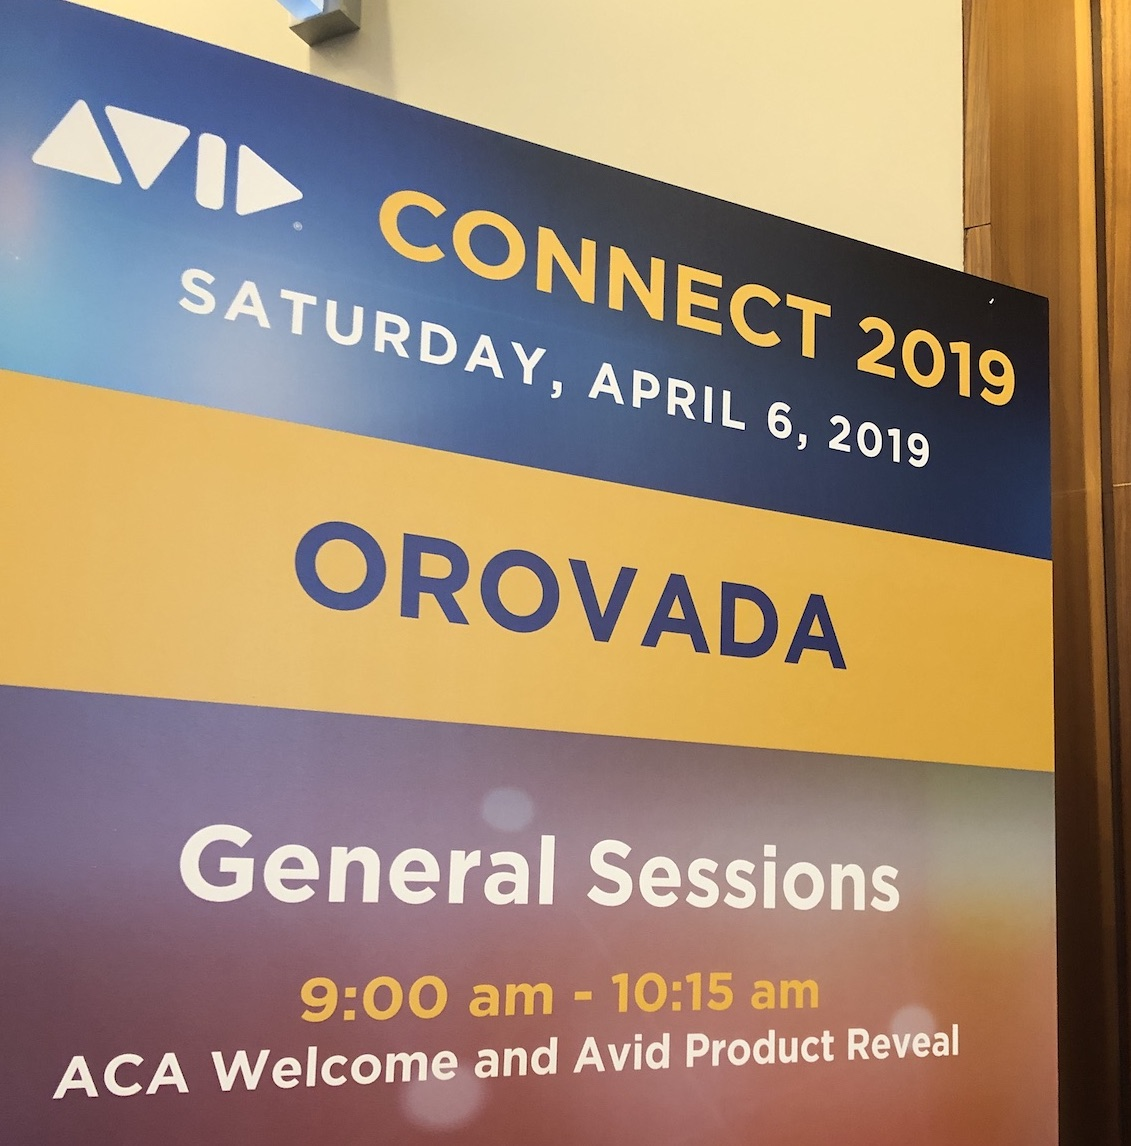 Avid Connect Press Conference and the Avid Product Reveal 2